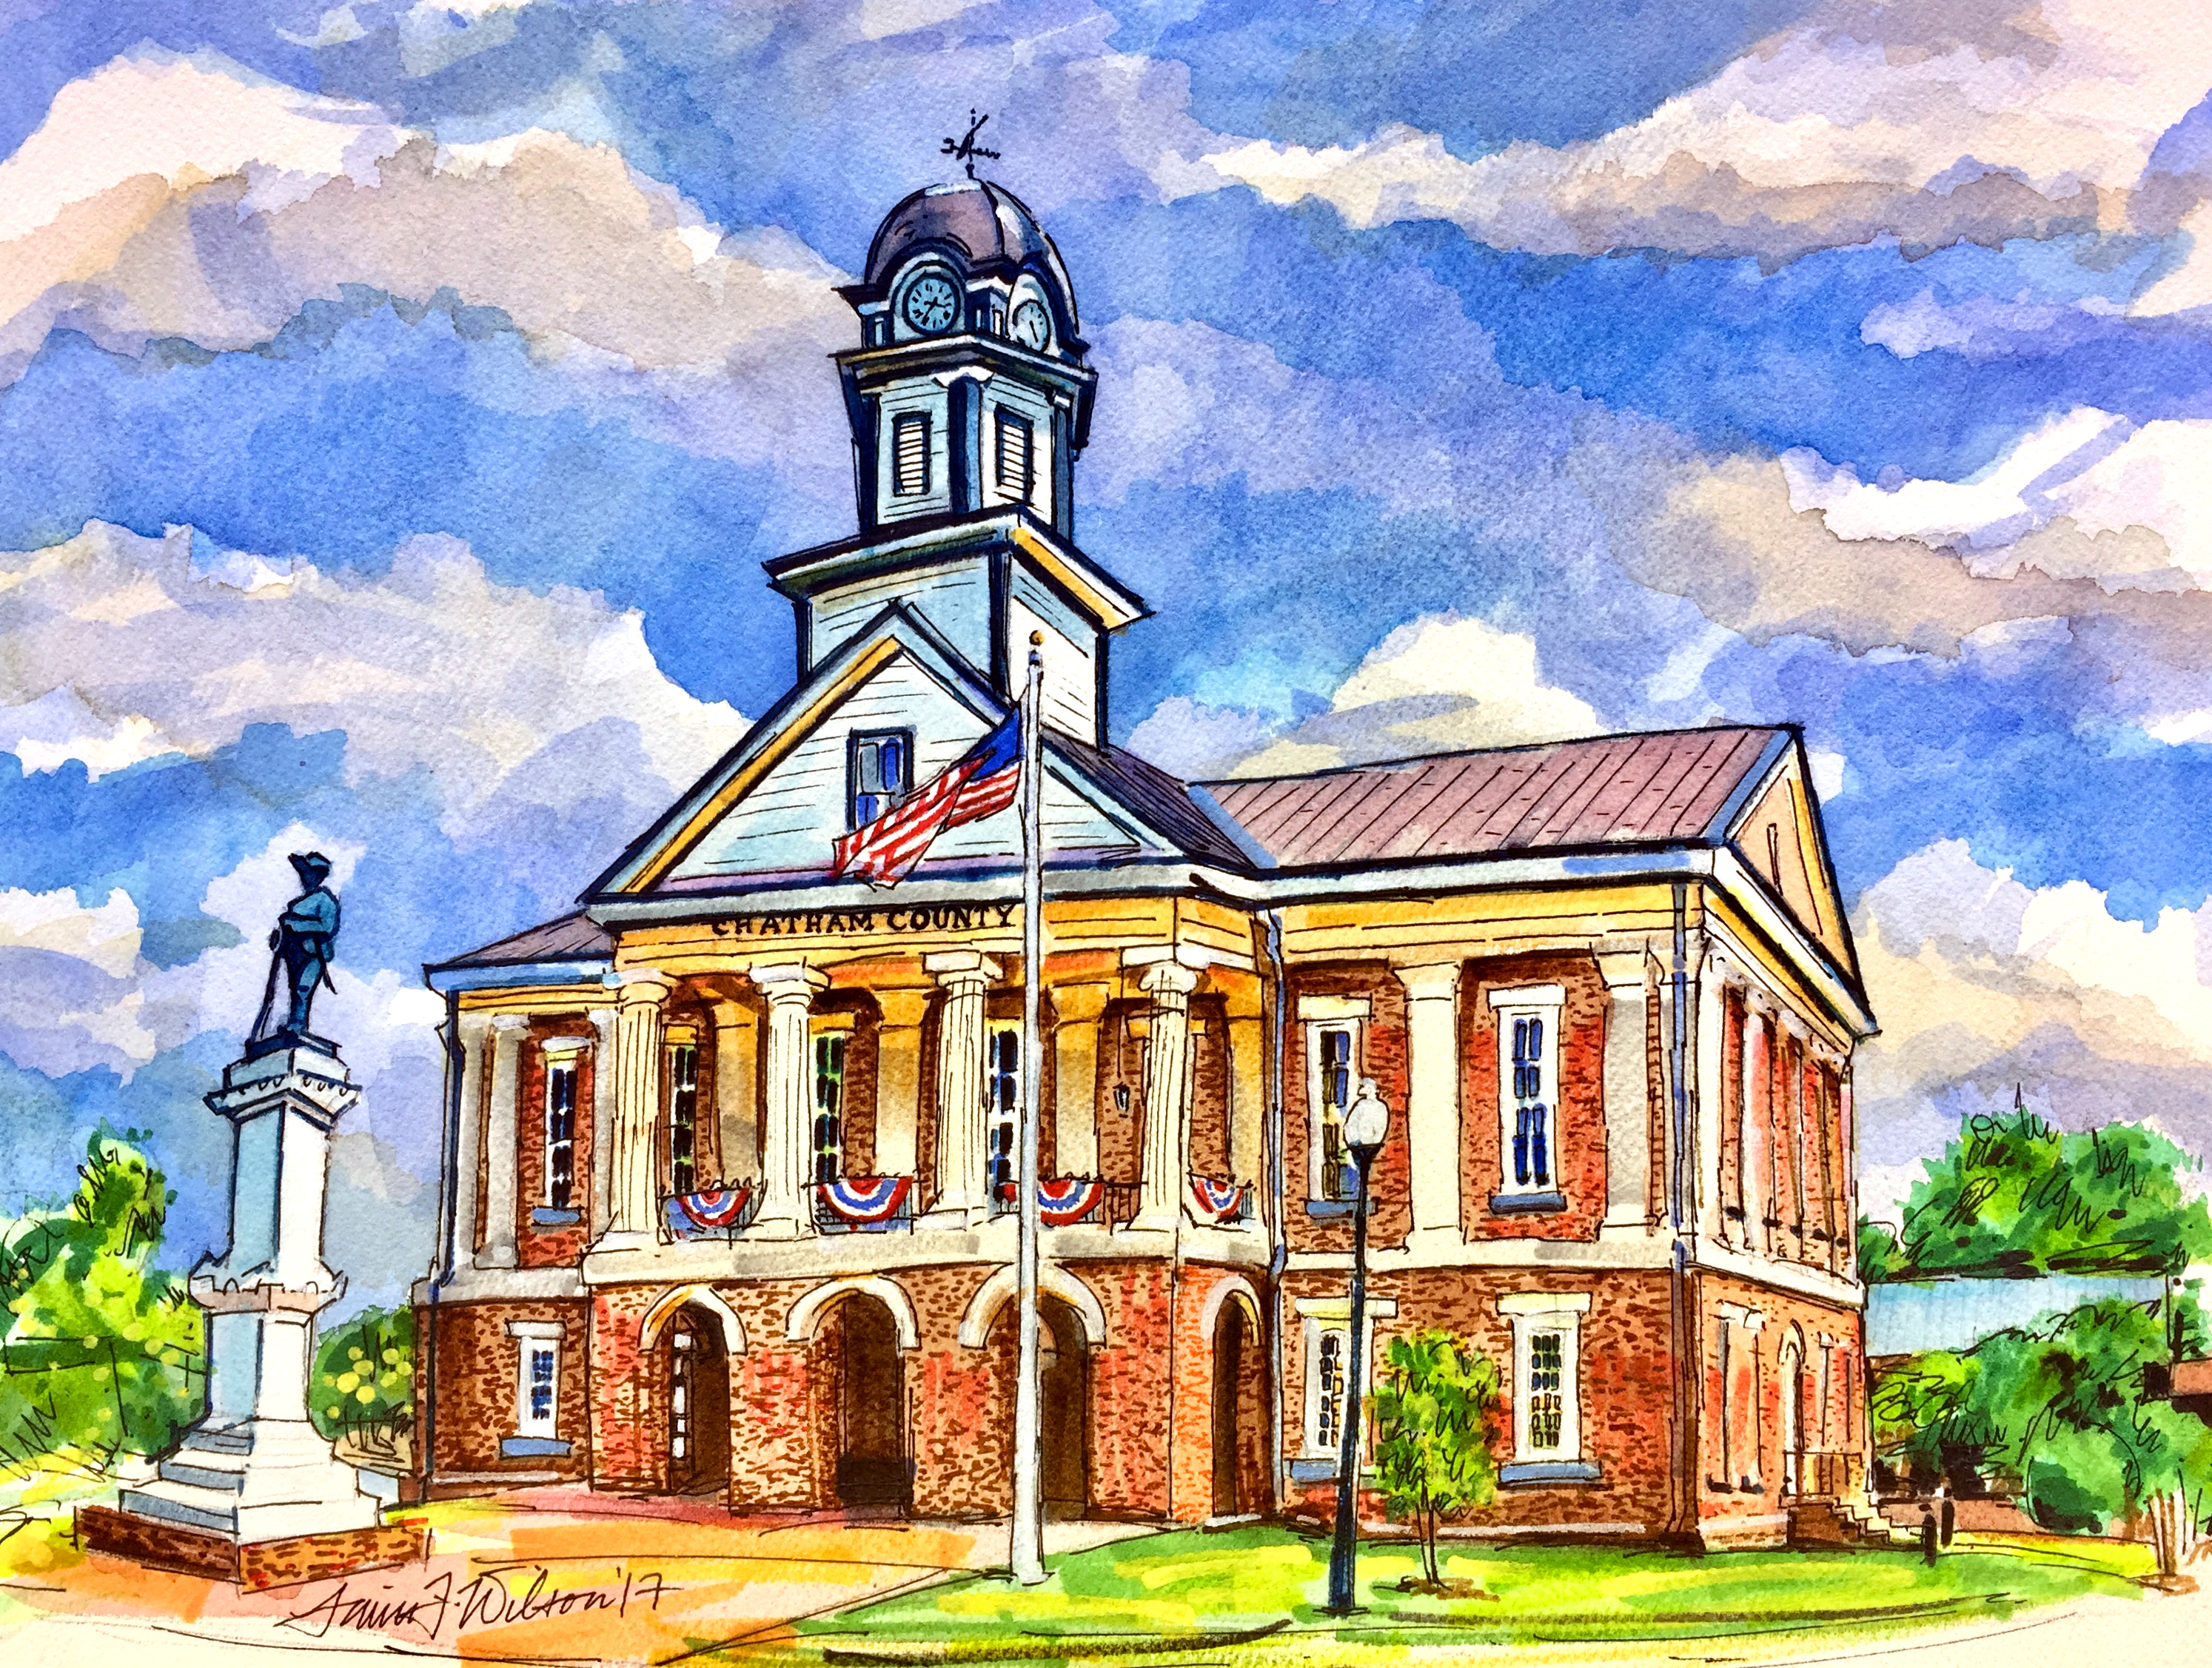 Pittsboro, NC - Courthouse